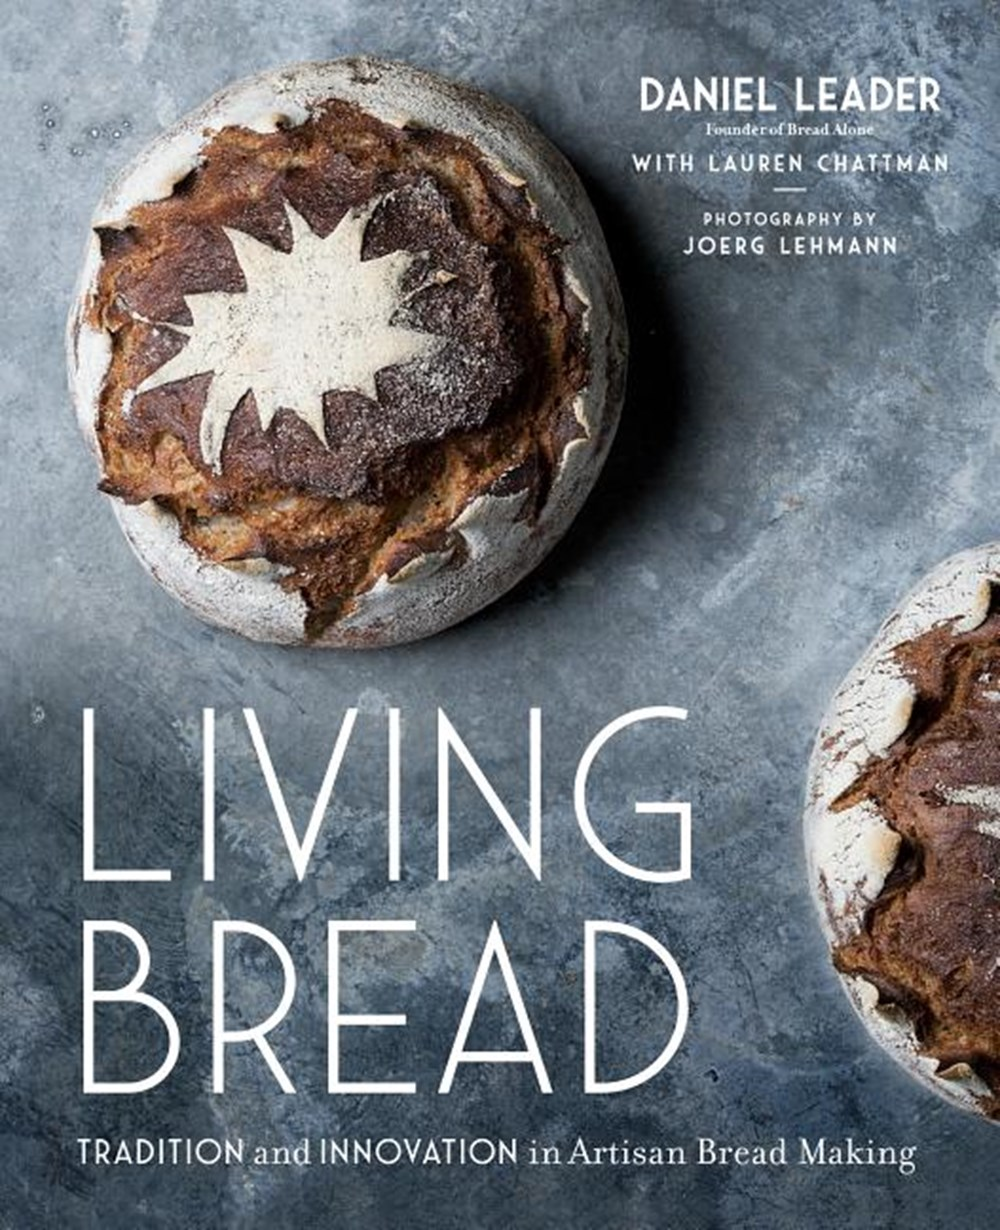 Living Bread Tradition and Innovation in Artisan Bread Making